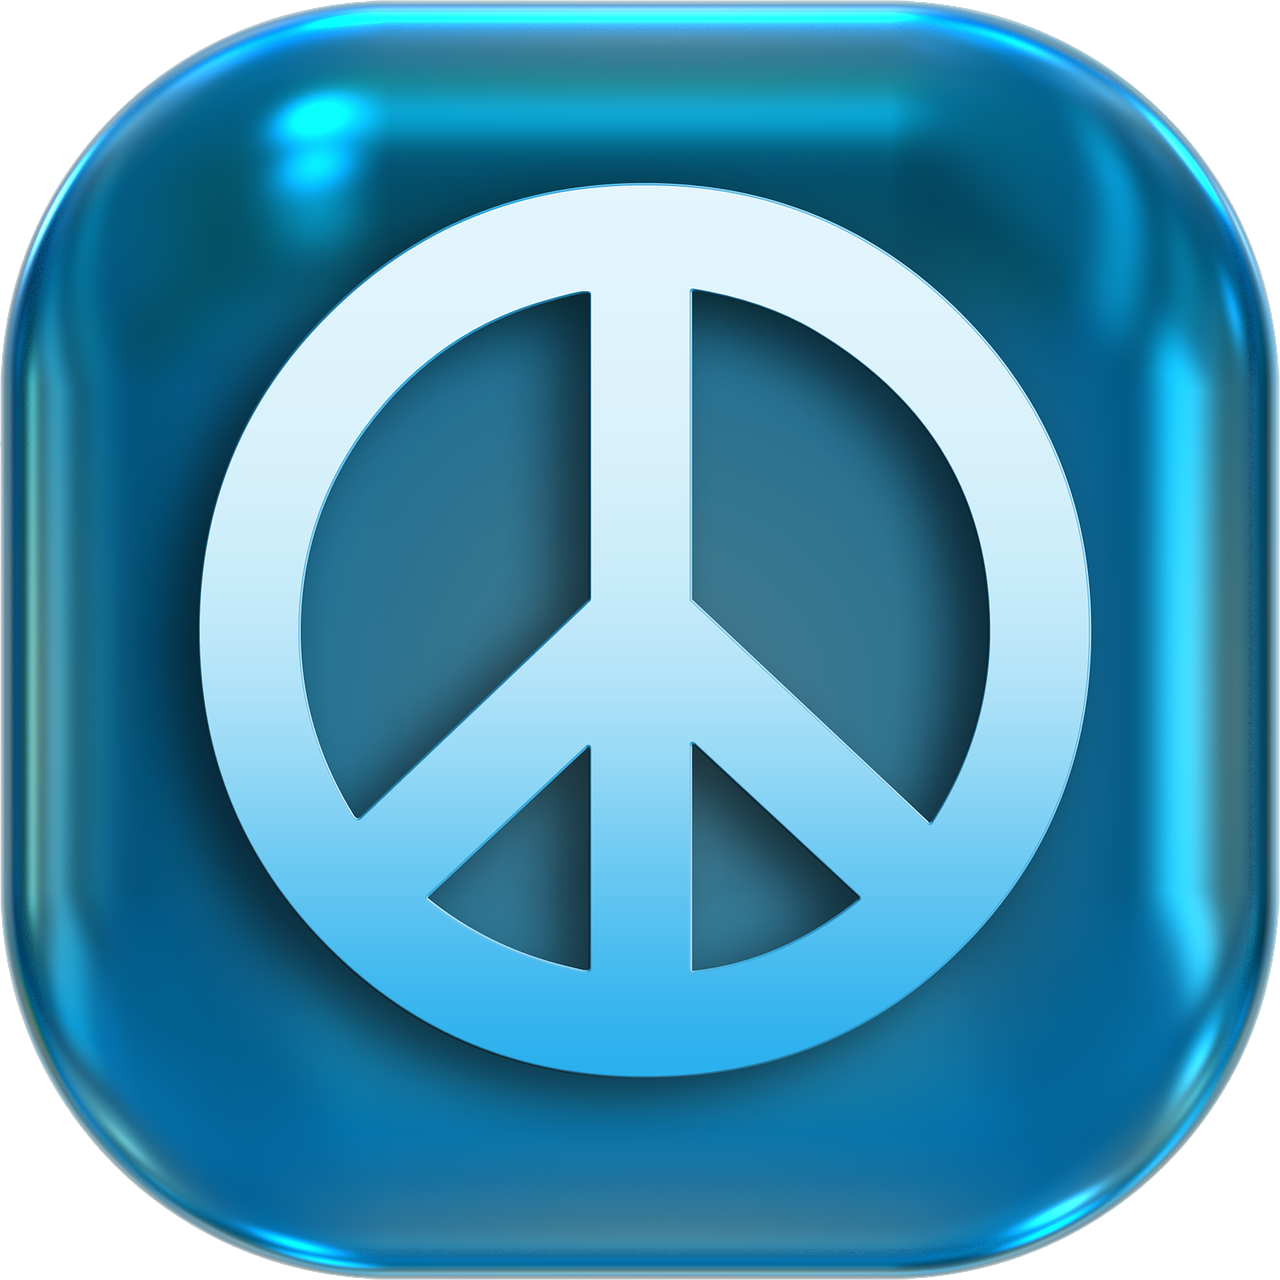 Icons Symbols Harmony Peace Sign Transparent Image Icons Pinterest